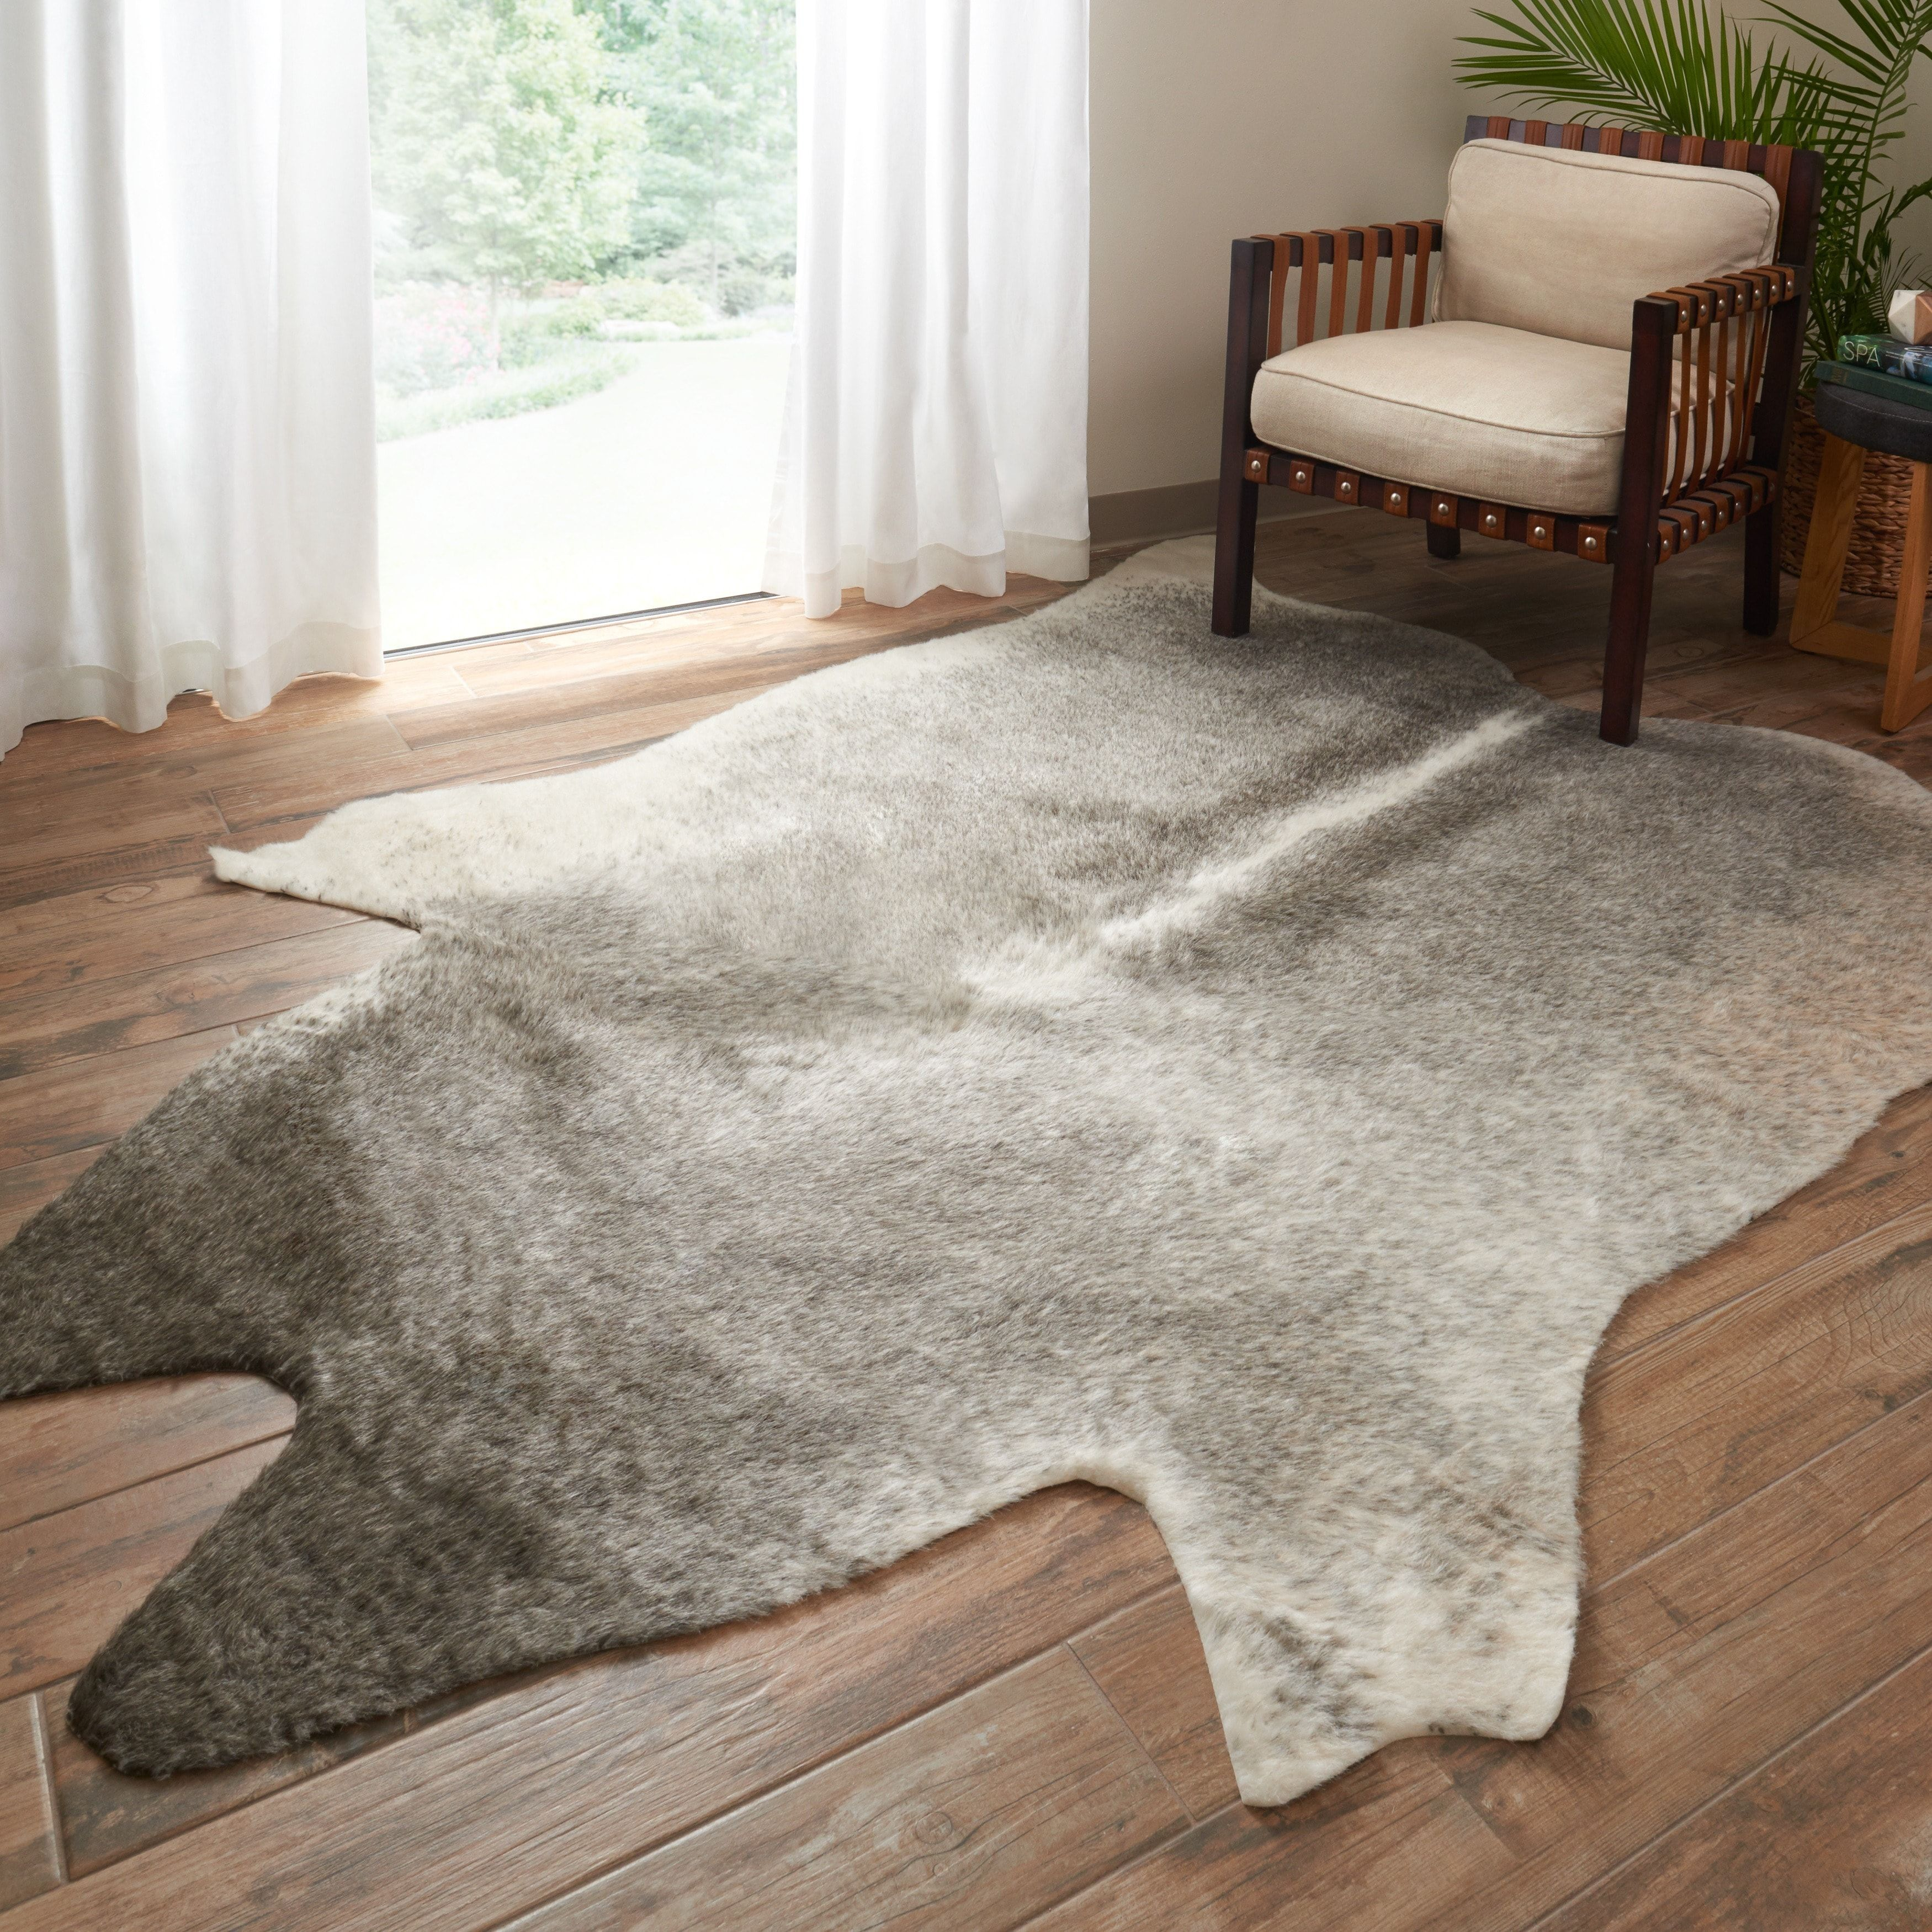 Faux Cowhide Grey Ivory Area Rug 5 X 6 6 Faux Cowhide Area Rug Faux Cowhide Rugs